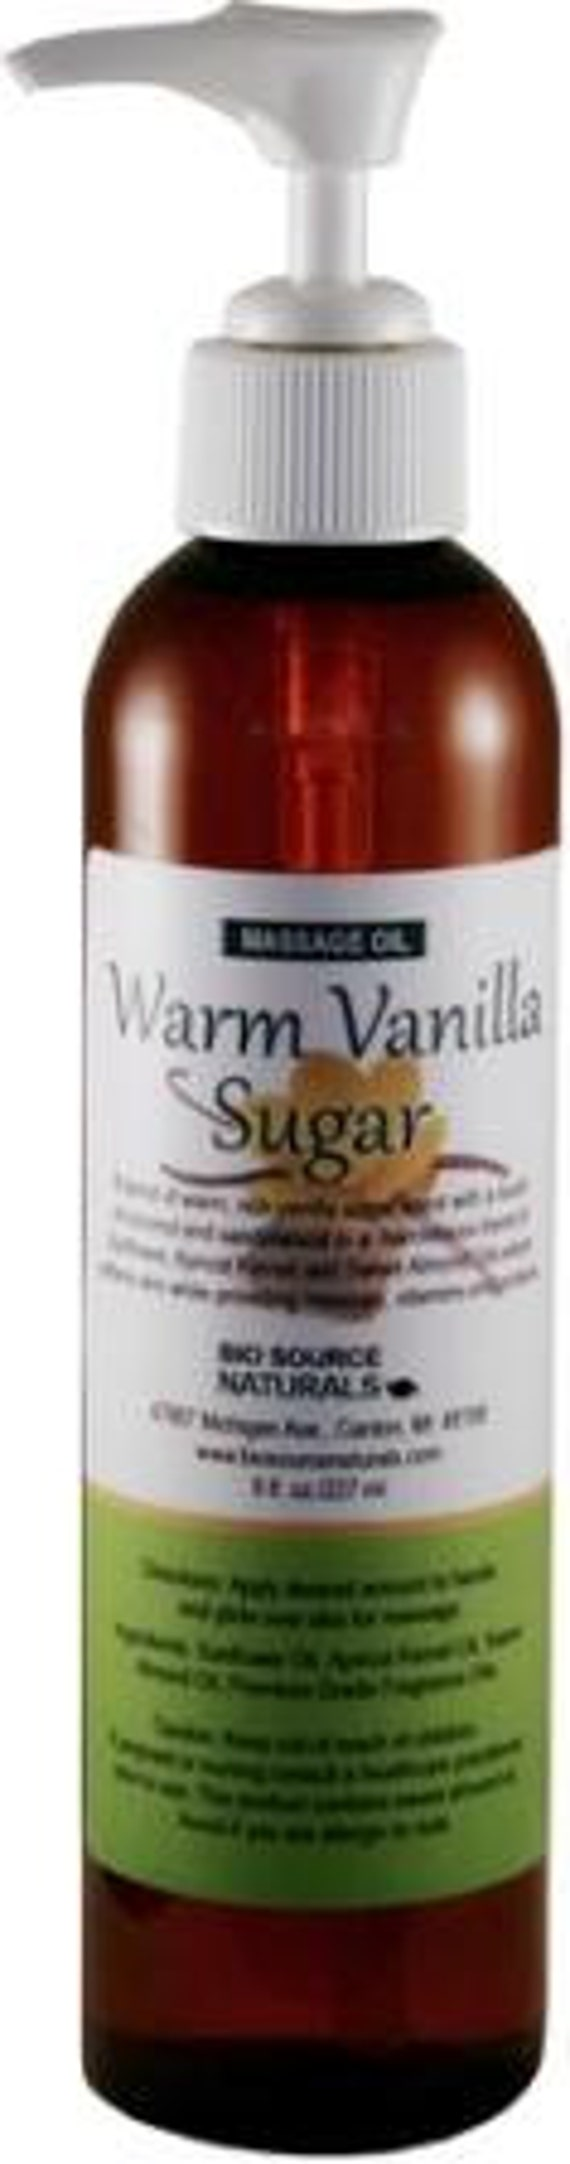 Warm Vanilla Sugar Massage Oil 8 oz with Lock Pump